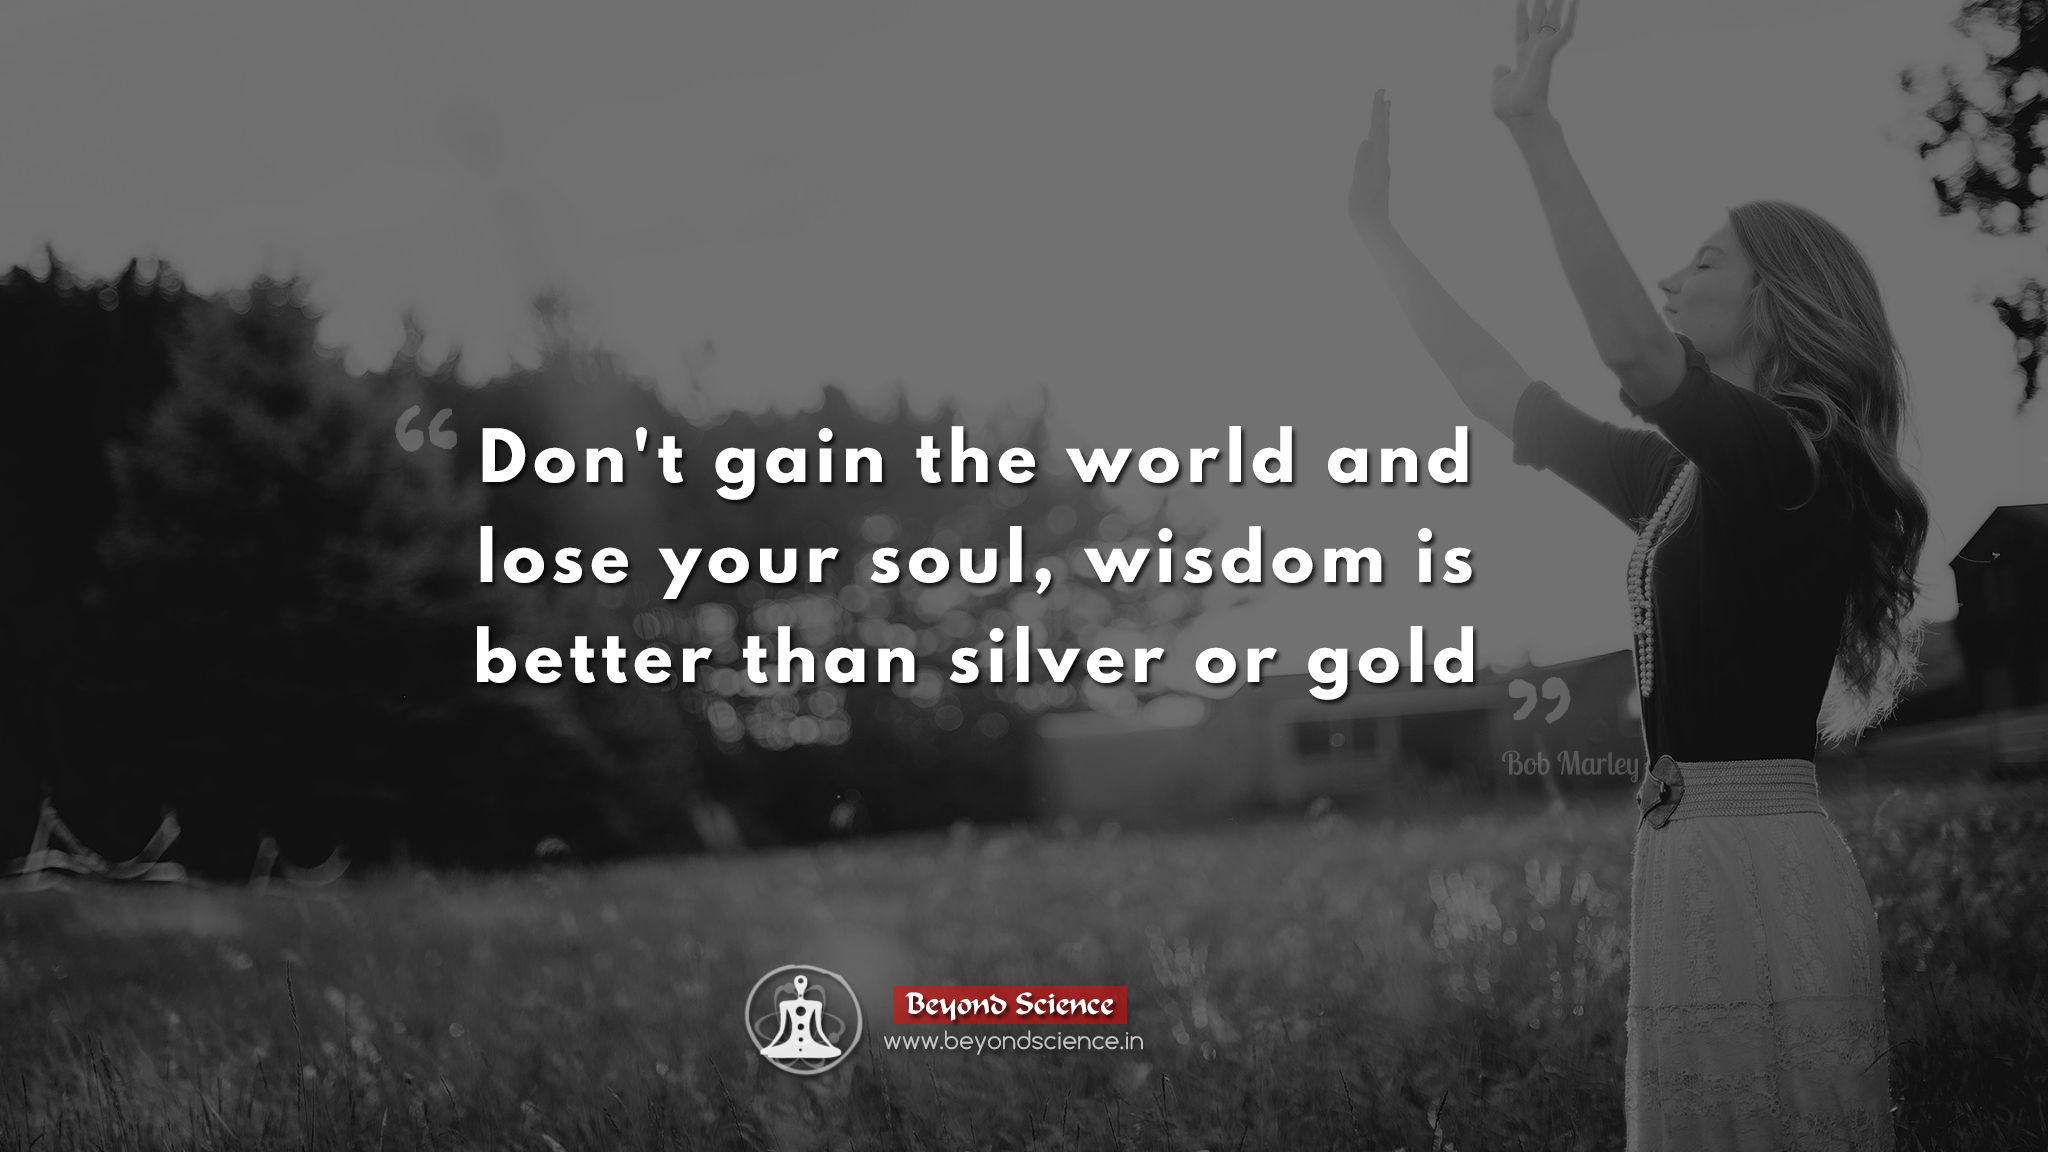 Don't gain the world and lose your soul wisdom is better than silver or gold